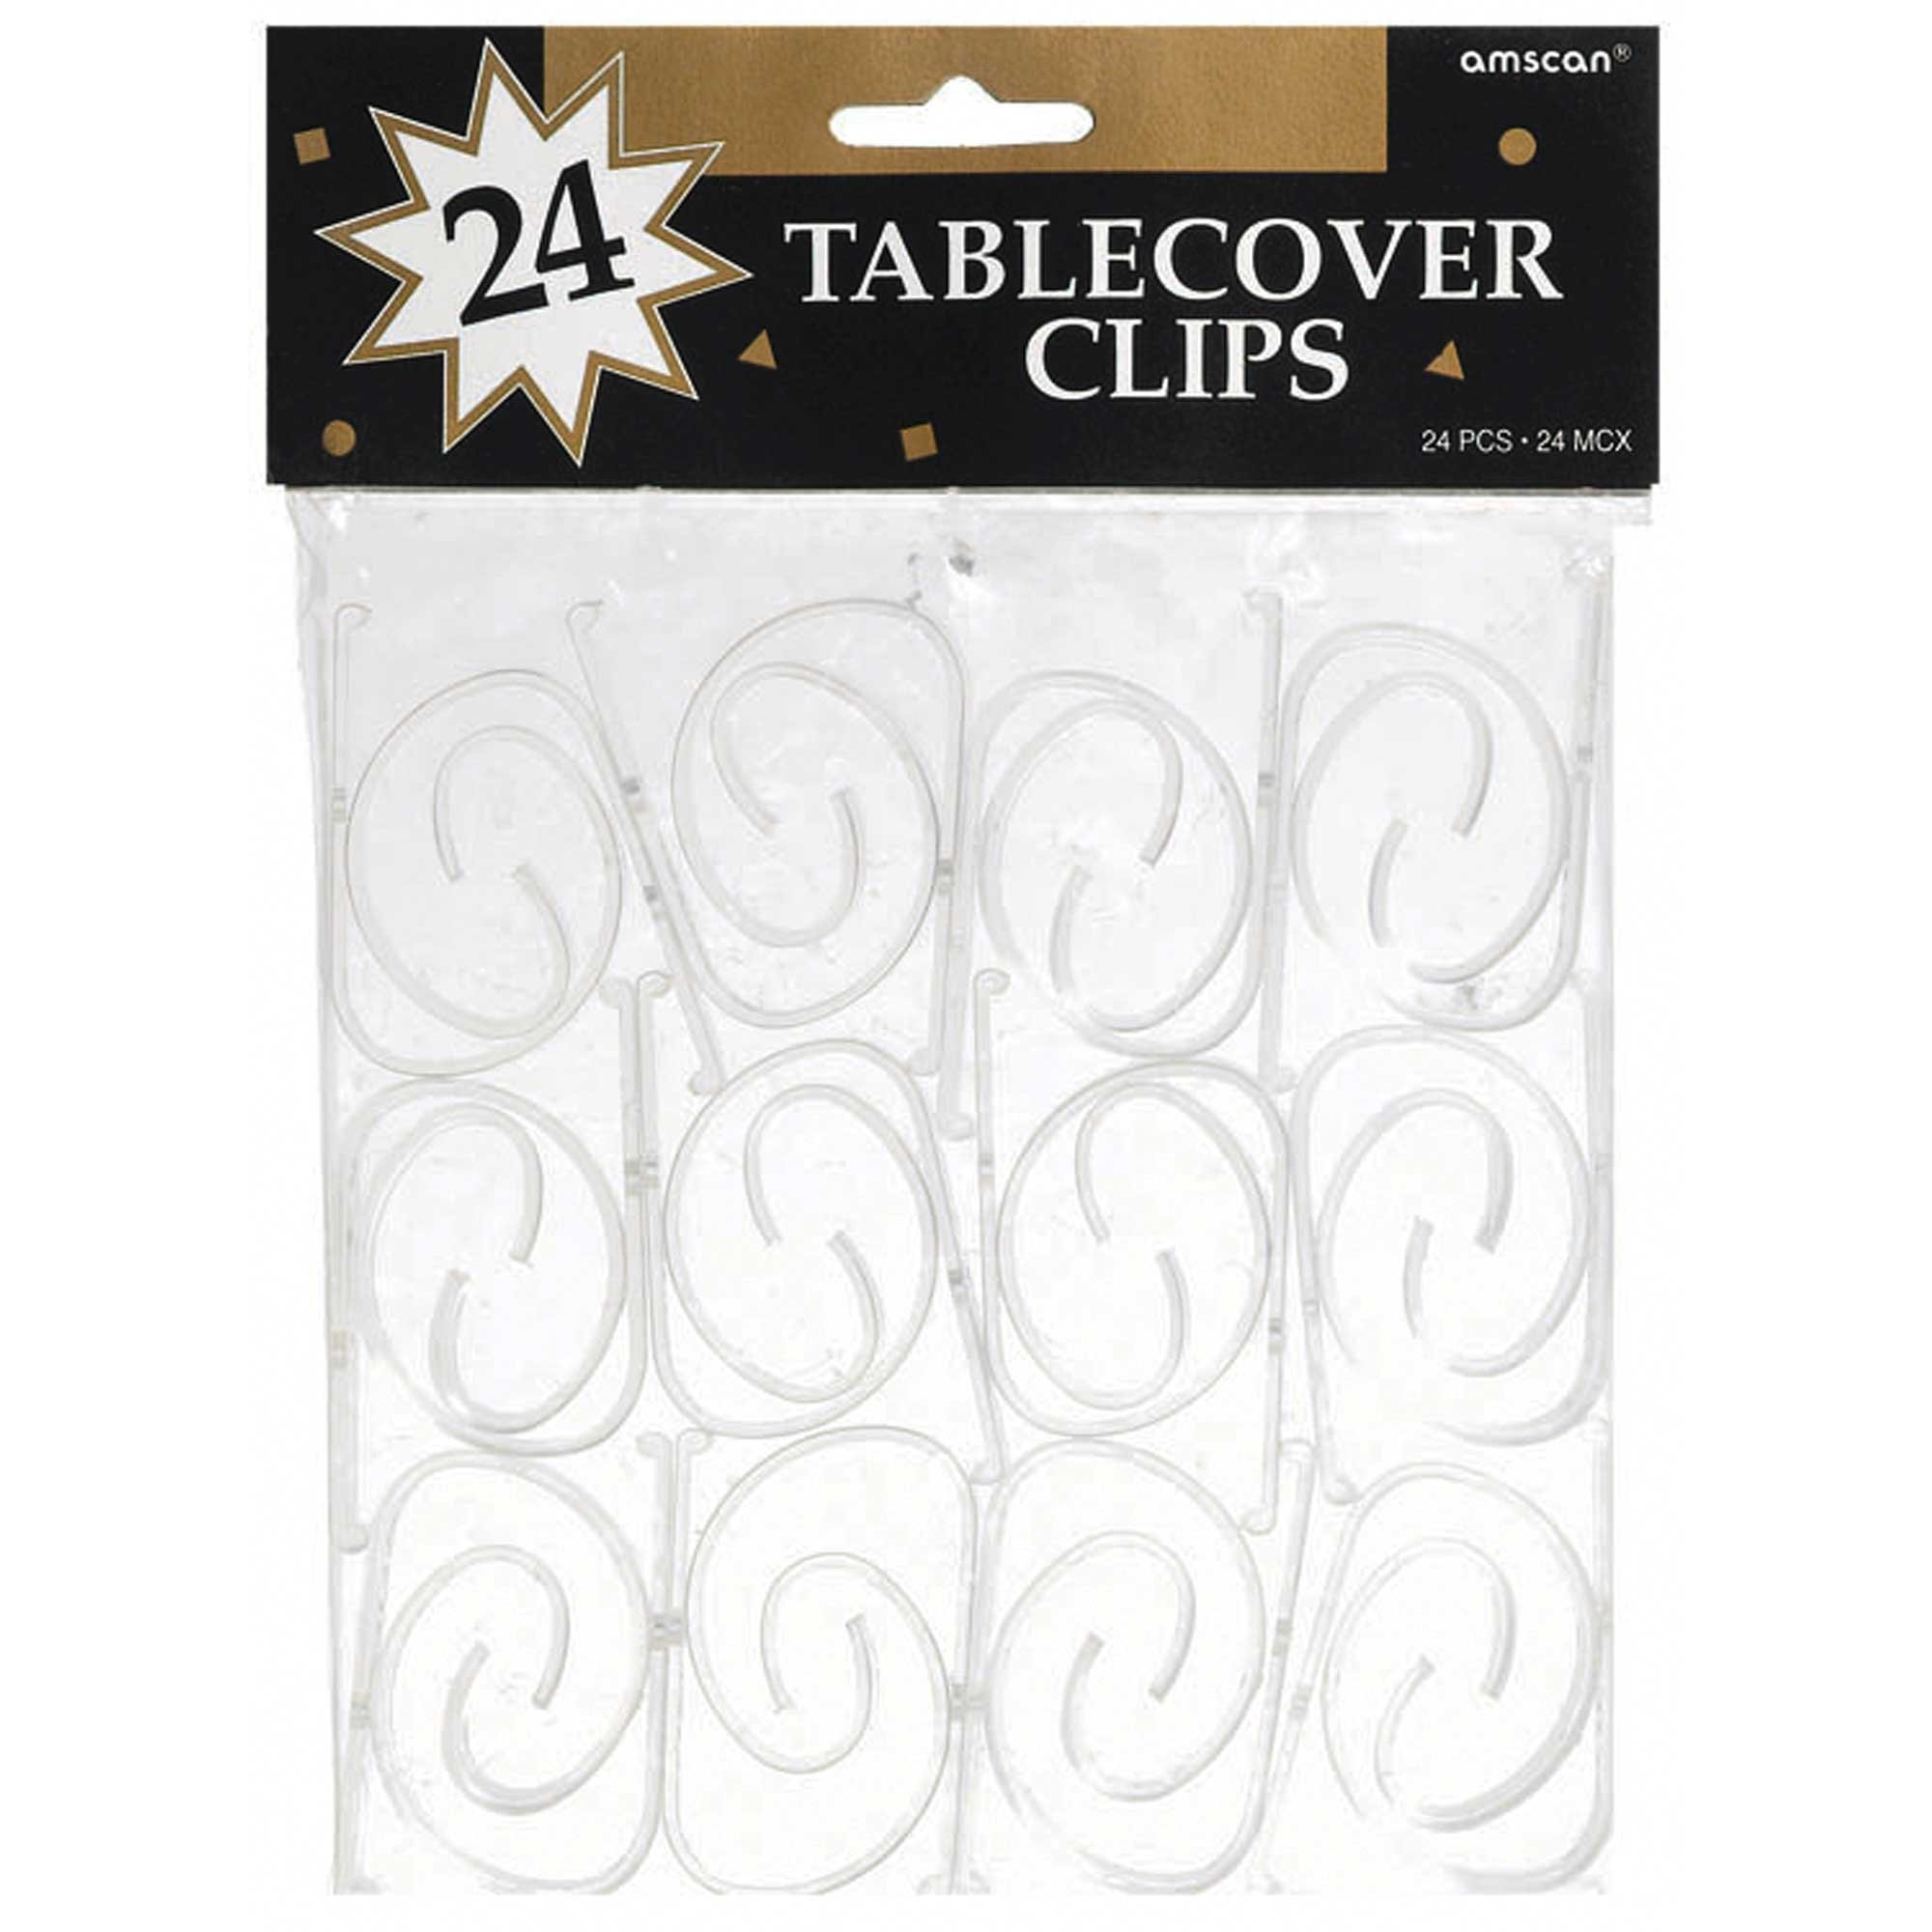 Tablecover Clips Value Pack Clear Plastic